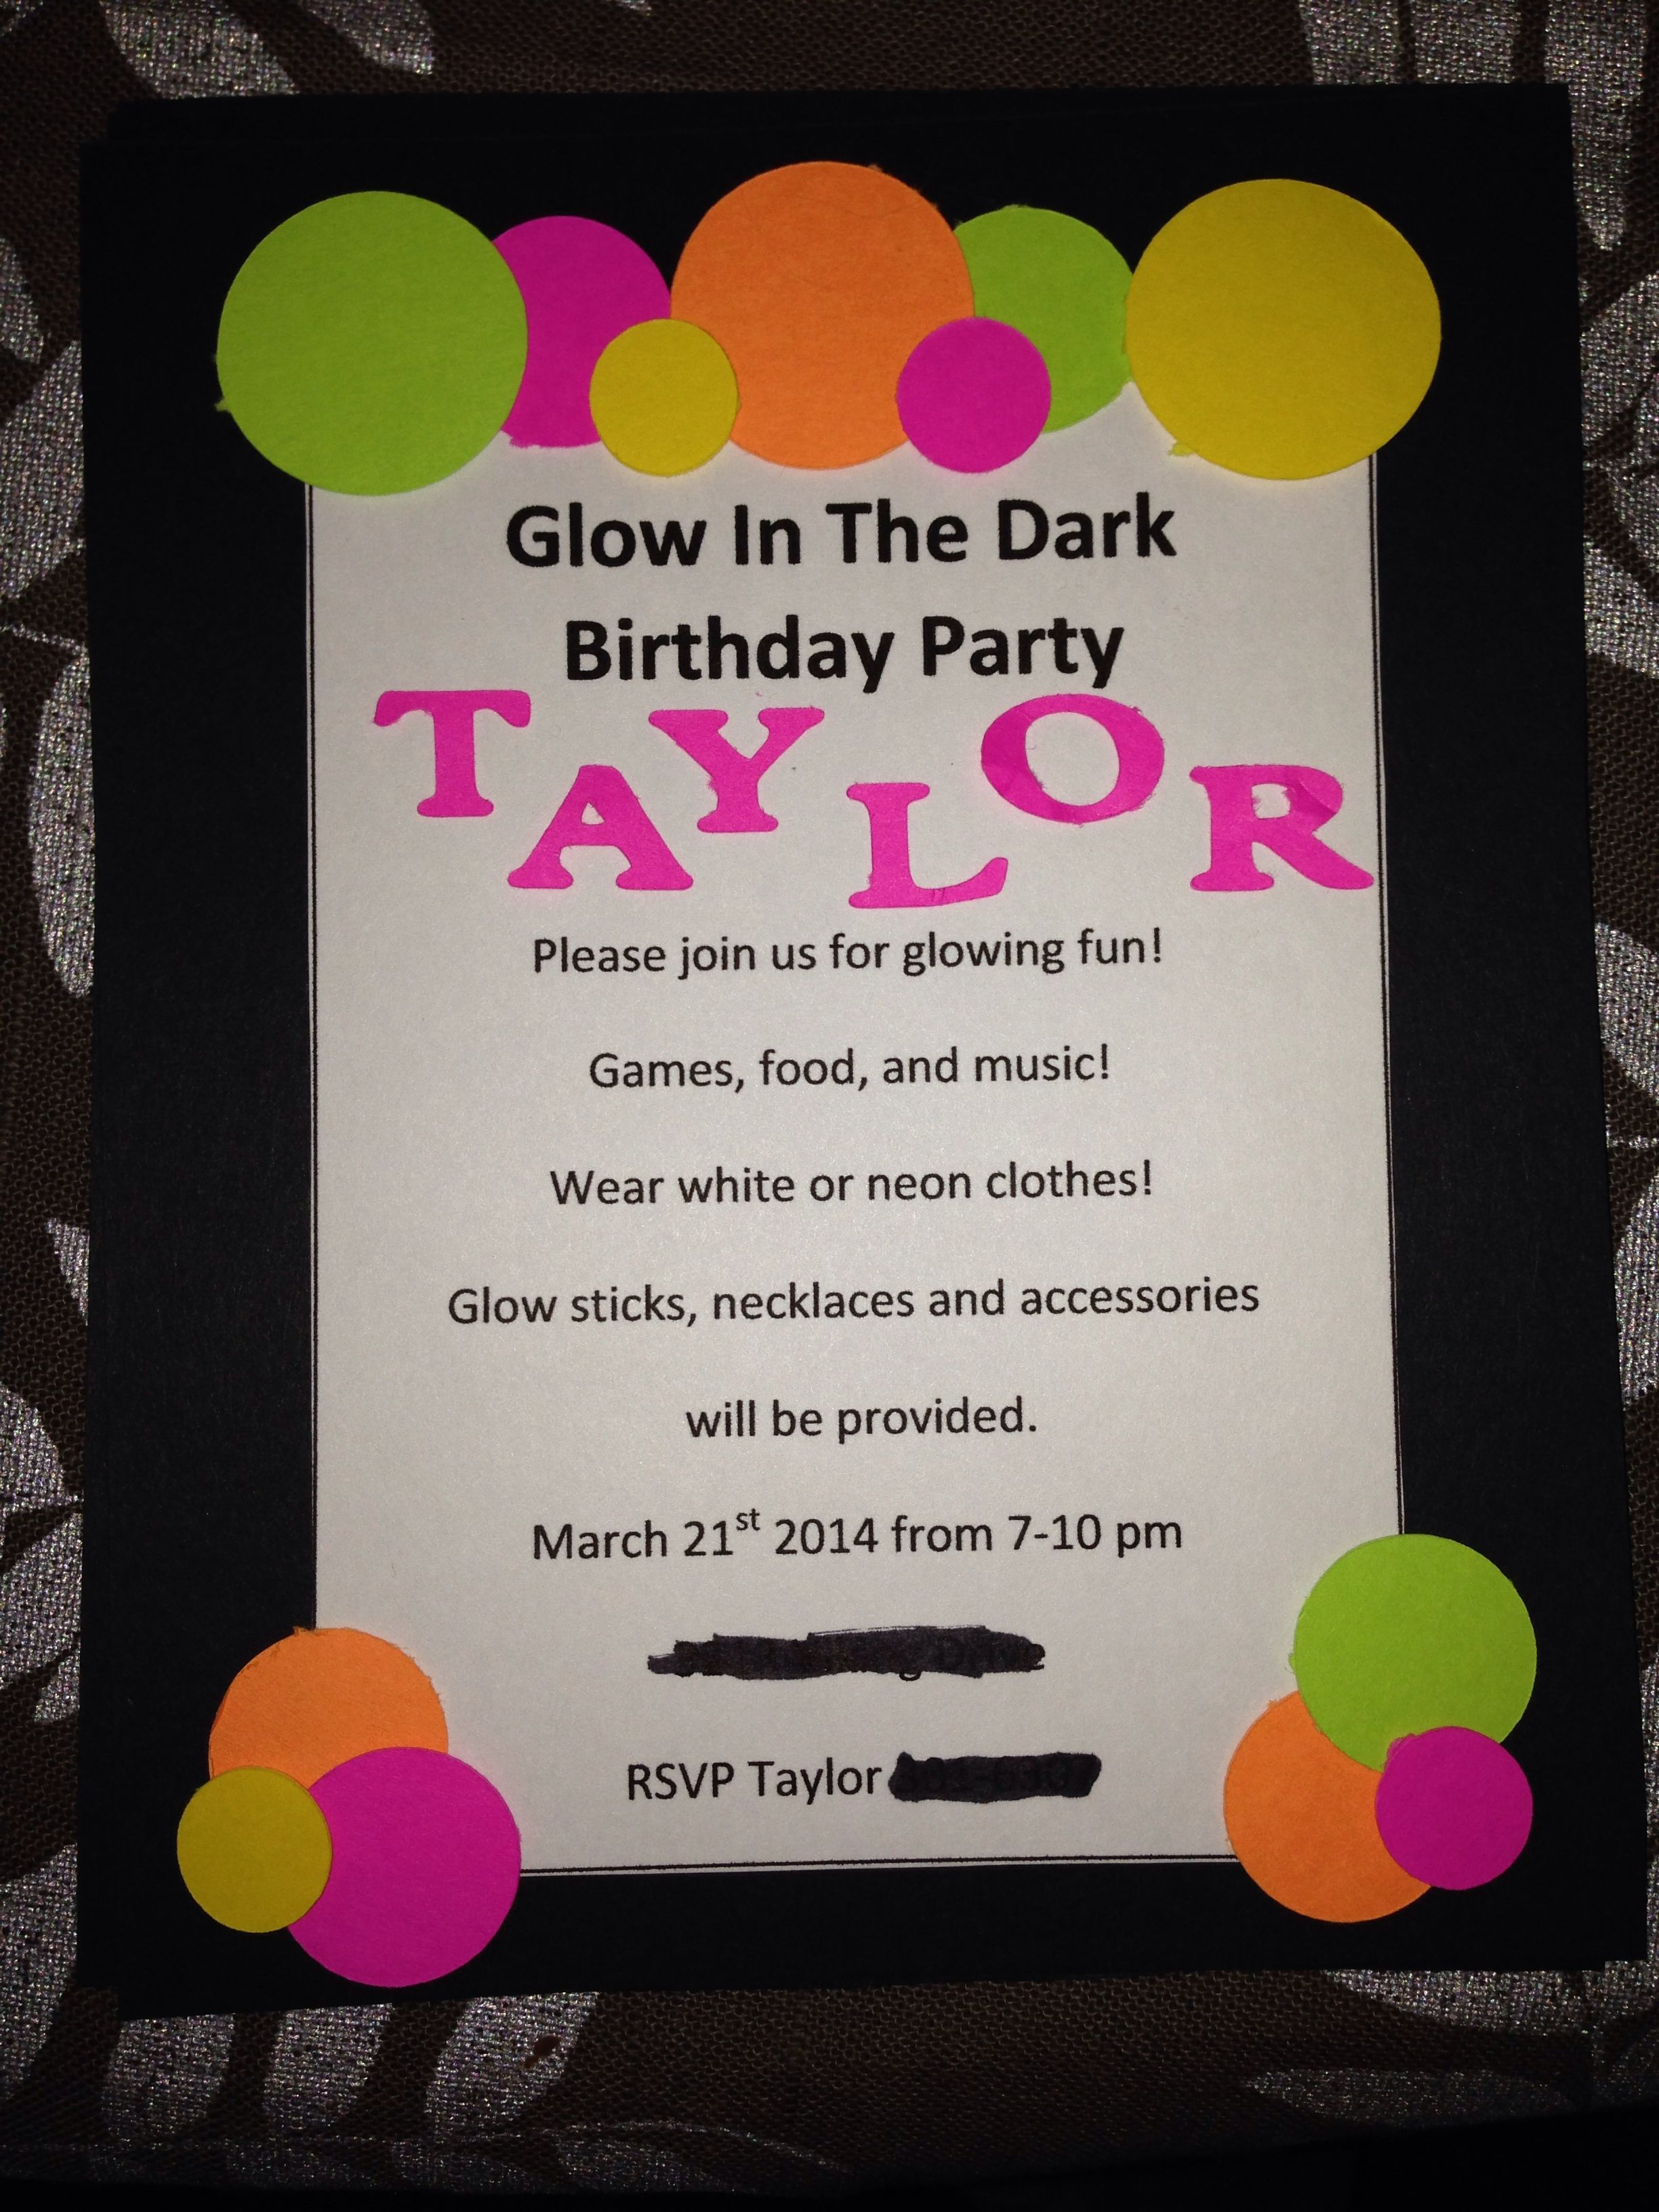 14th birthday invite glow in the dark party birthday ideas in